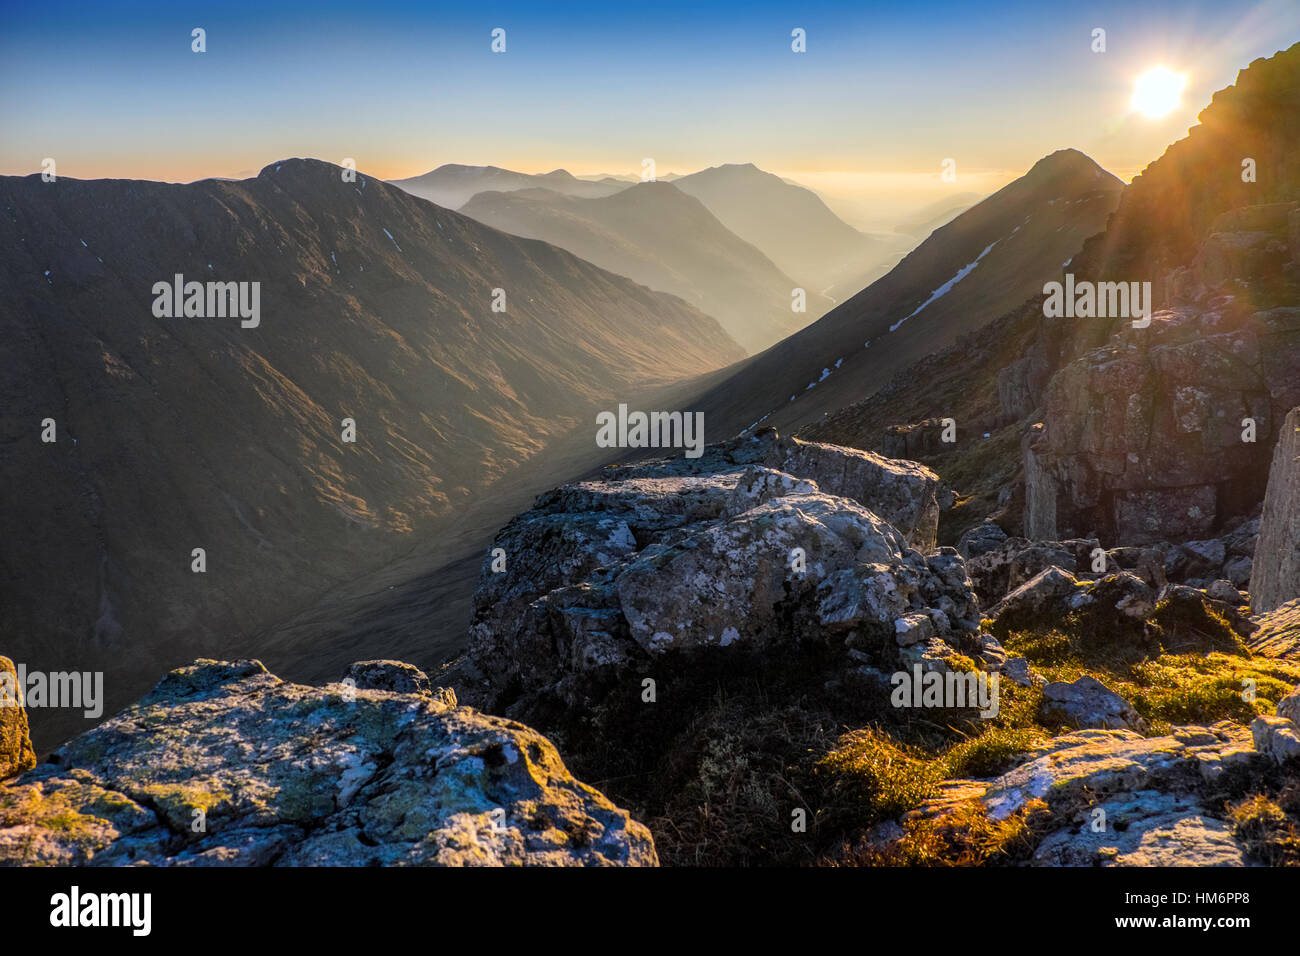 Setting sun and view down Geln Etive from Buchaille Etive Beag, Scottish Highlands - Stock Image